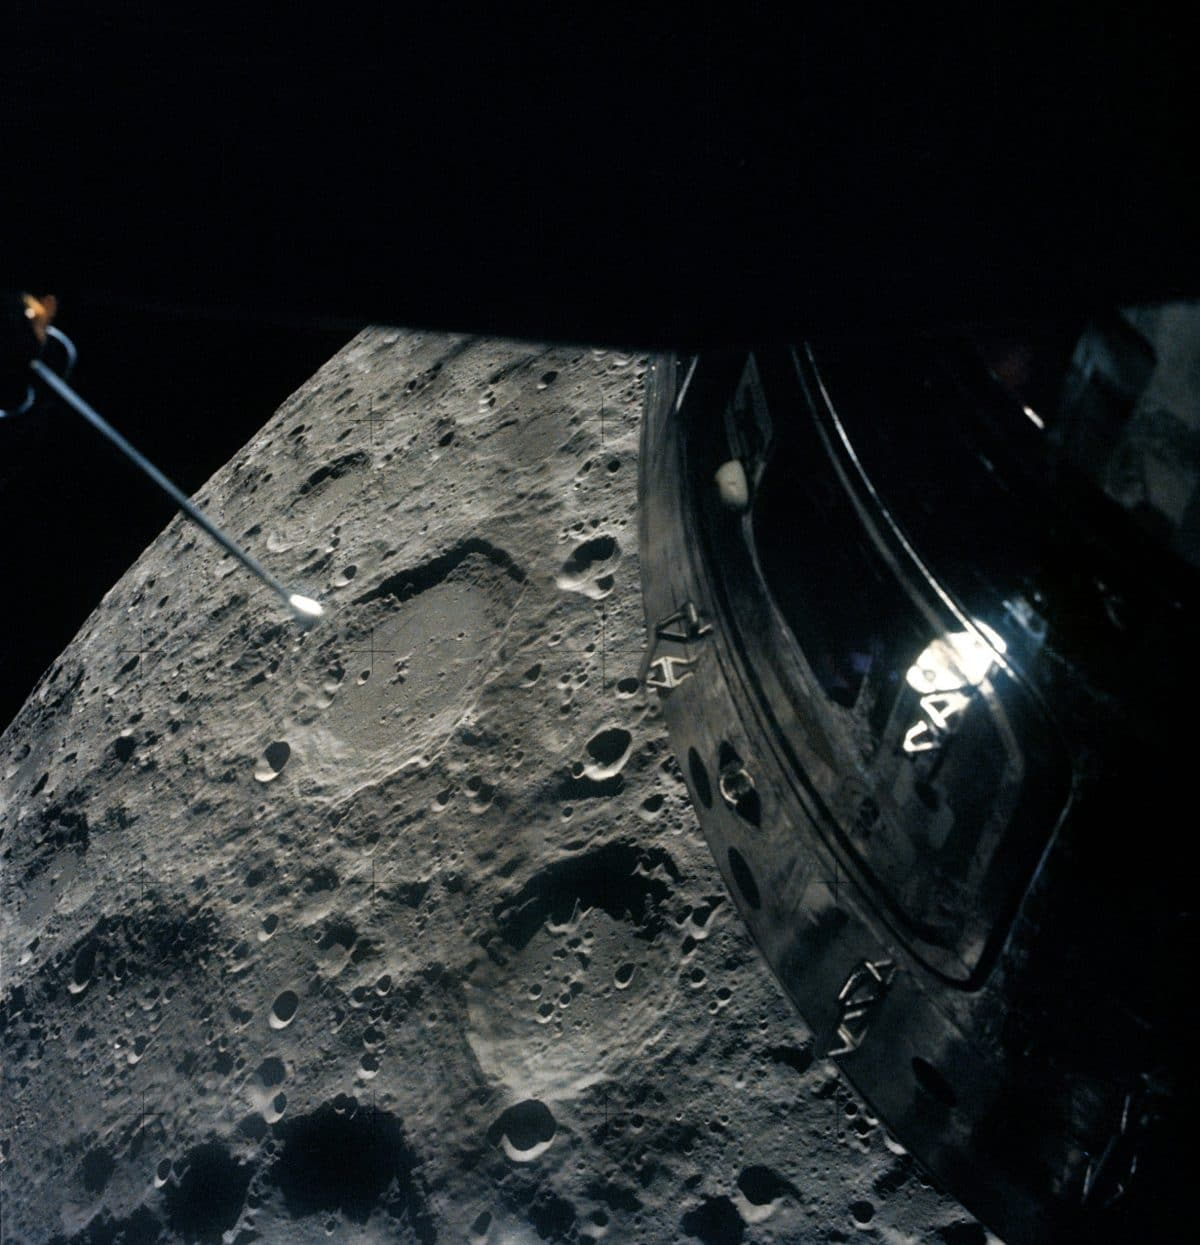 Apollo 13 swings by the Moon